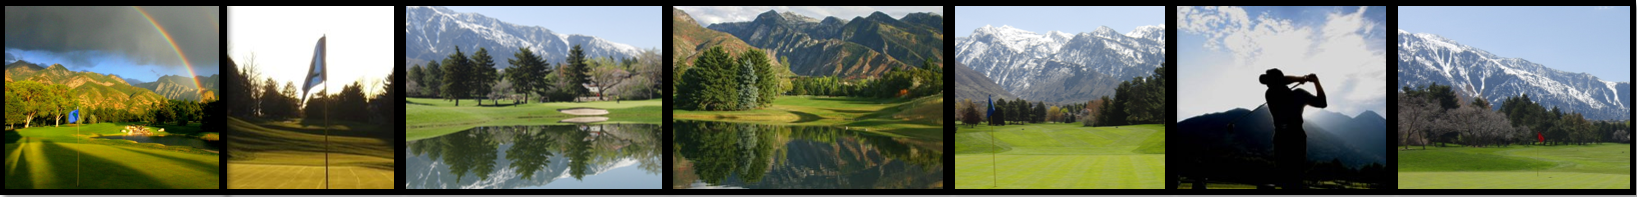 WILLOW CREEK COUNTRY CLUB, SANDY UTAH, UTAH GOLF, UTAH COUNTRY CLUBS, BEST GOLF COURSES IN UTAH